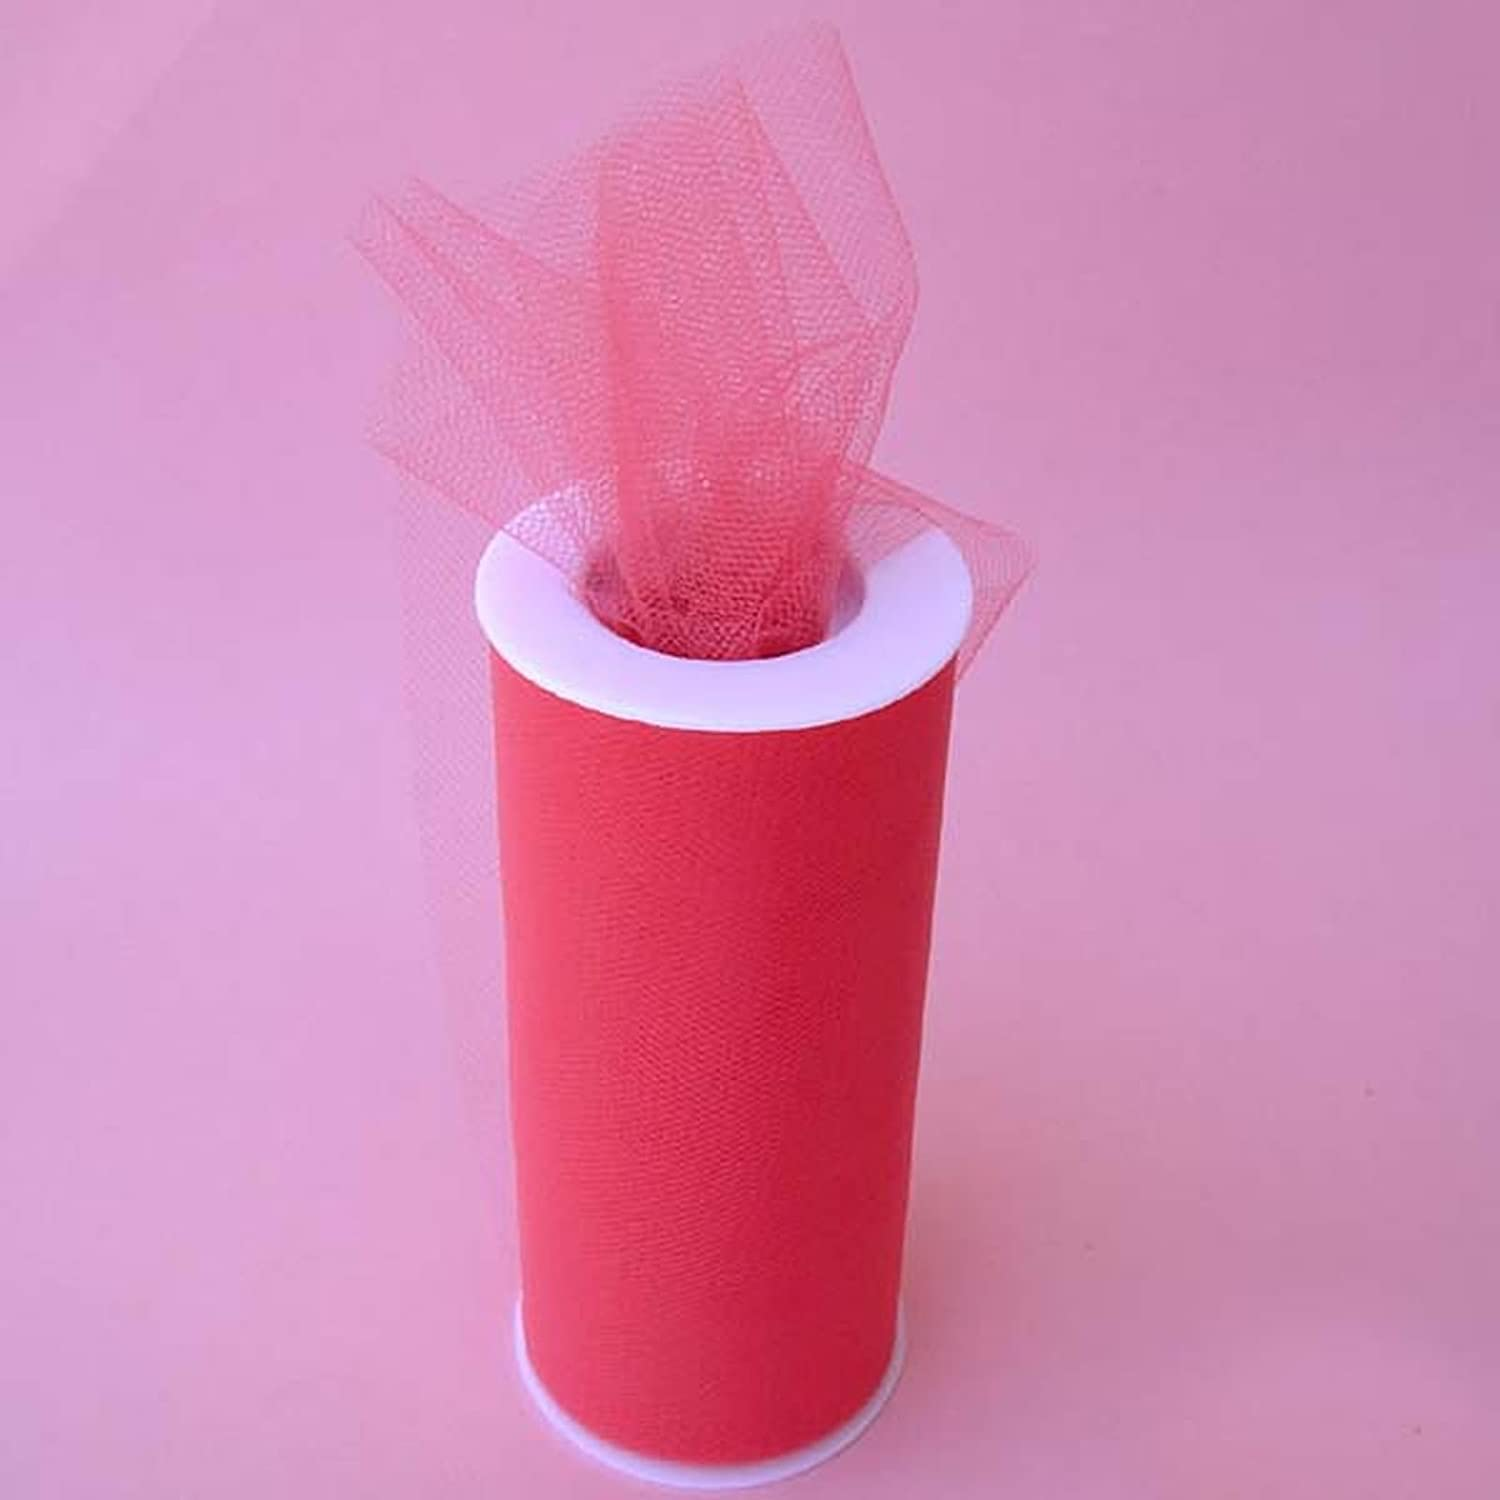 Gifts International Tulle Fabric Spool Roll service X 7 6-Inch yards shop 25